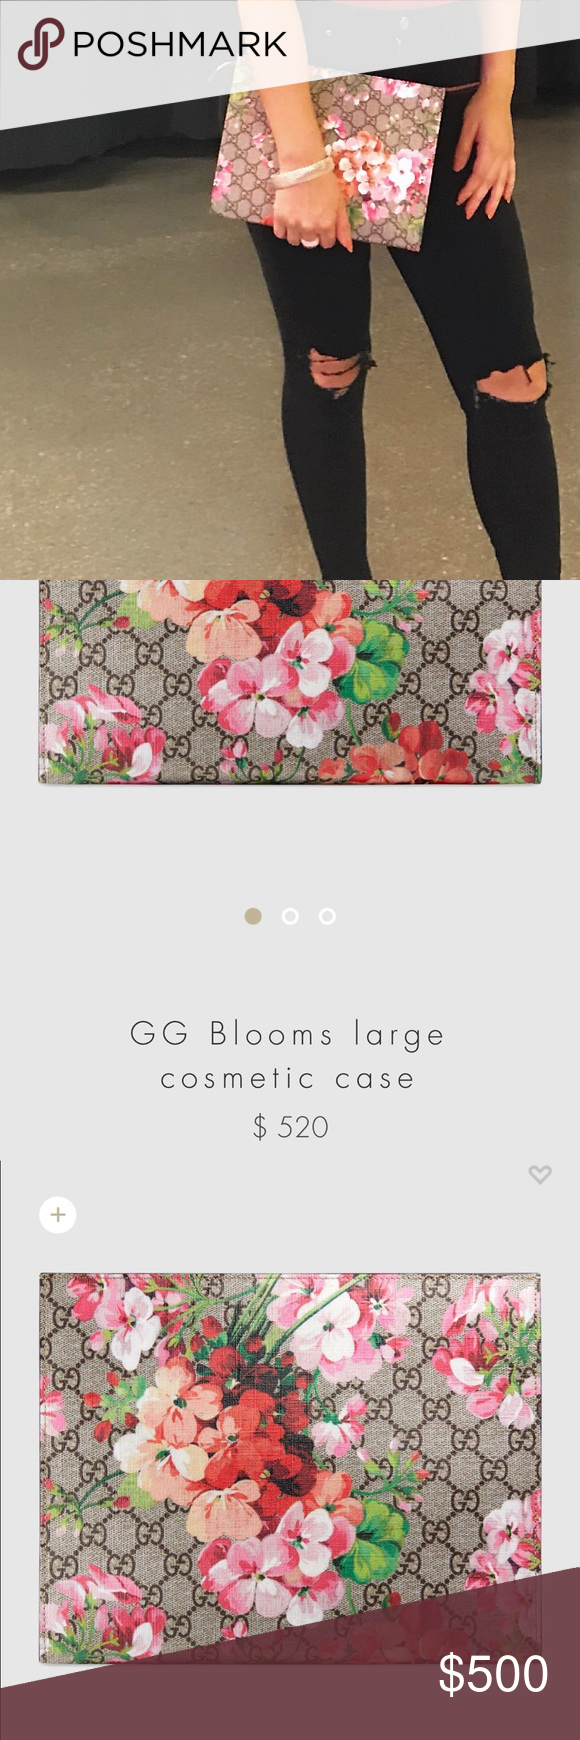 18f3fbf1d81 GUCCI GUCCI GUCCI Brand new used once. With box bag. Gucci blooms cosmetic  bag 2017 I paid  562.0 Gucci Bags Cosmetic Bags   Cases